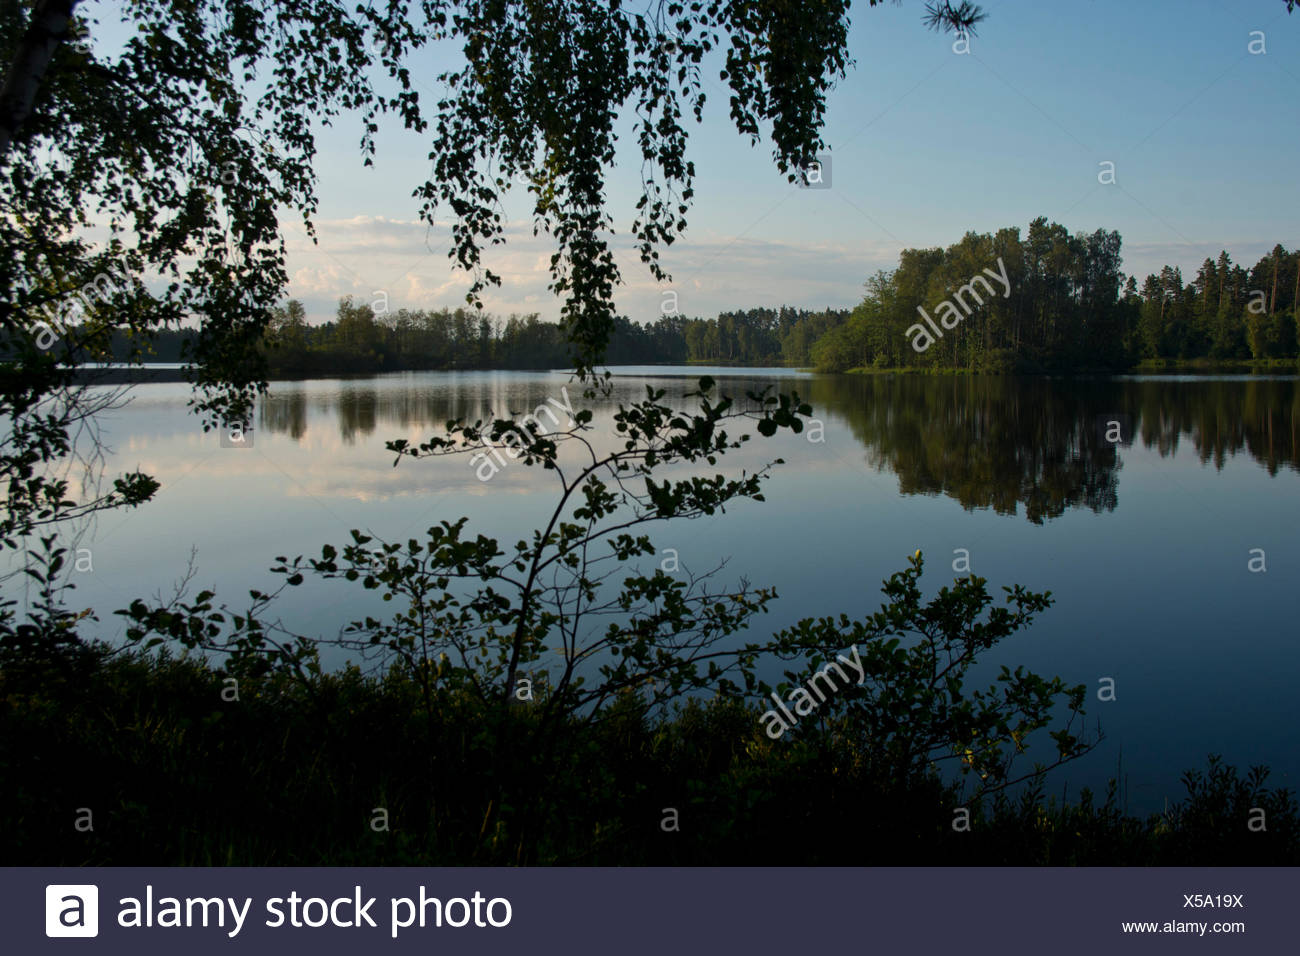 Sweden, Europe, Smaland, Markaryd, Store Sjö, lake, shore, trees, summer, islands, - Stock Image